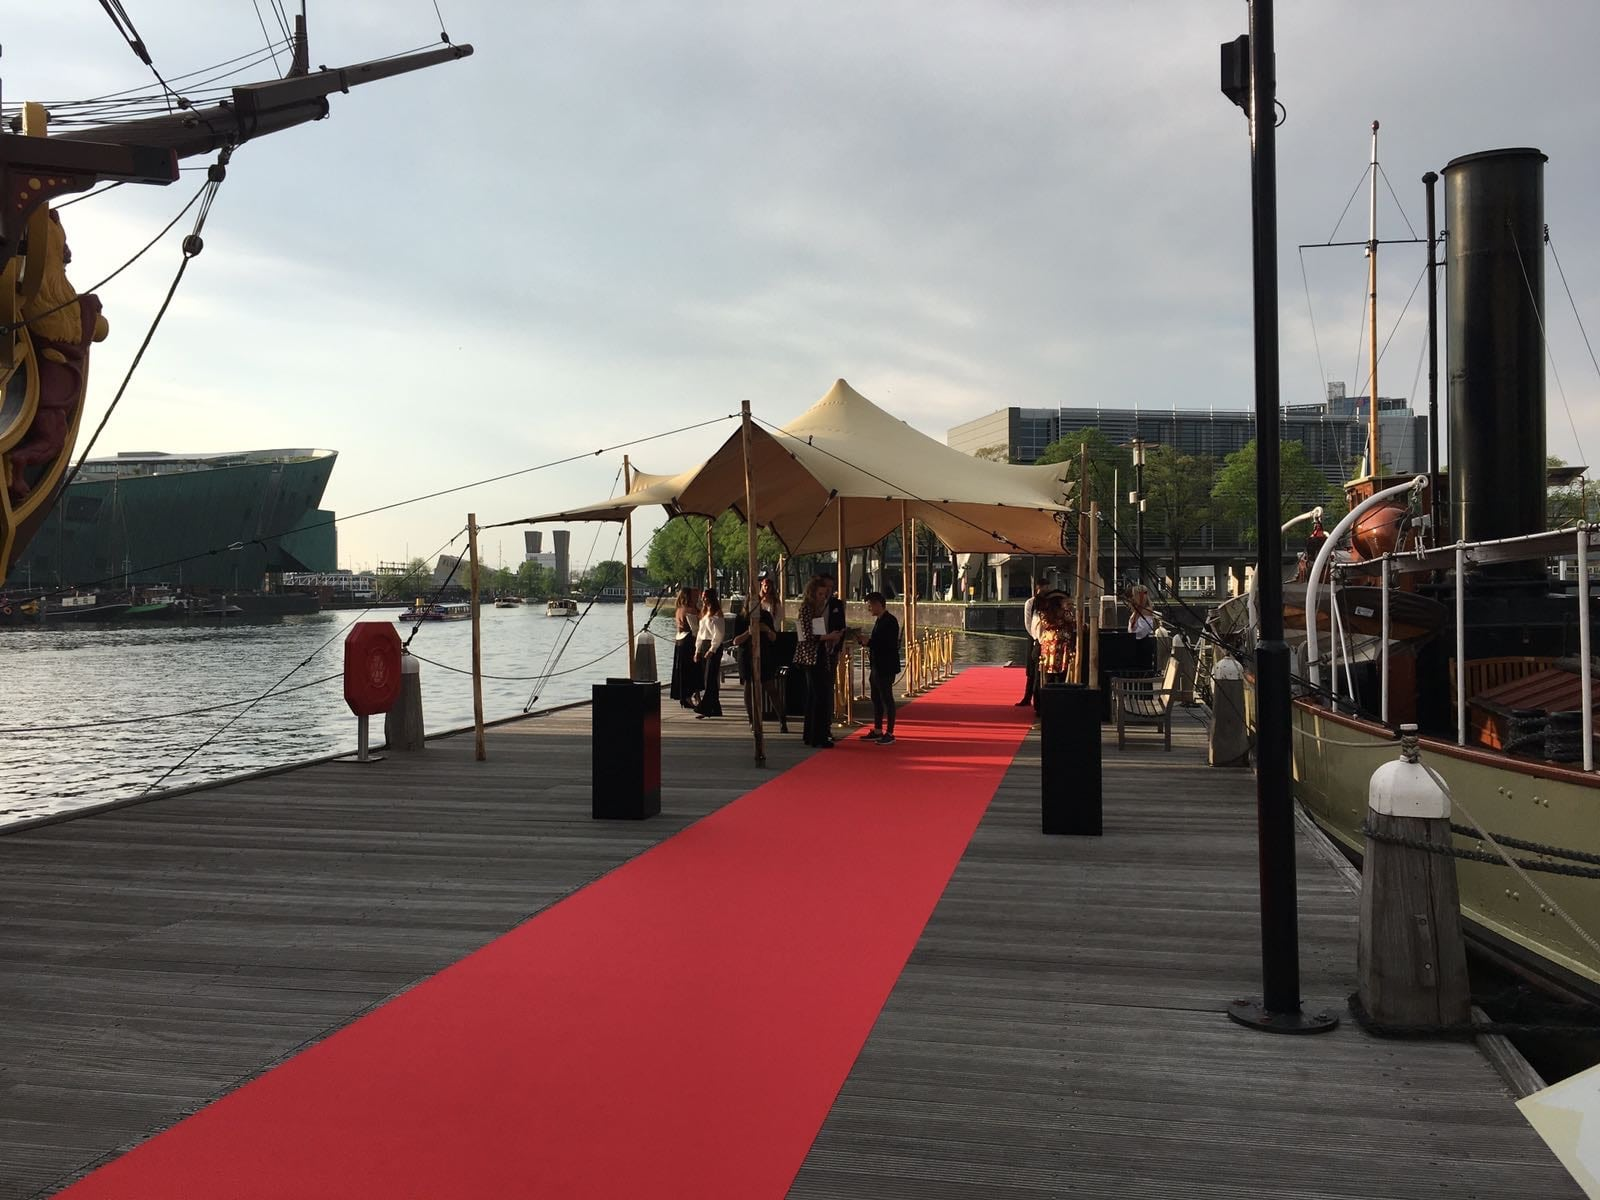 Premiere Pirates of the Carribean Scheepvaartmuseum